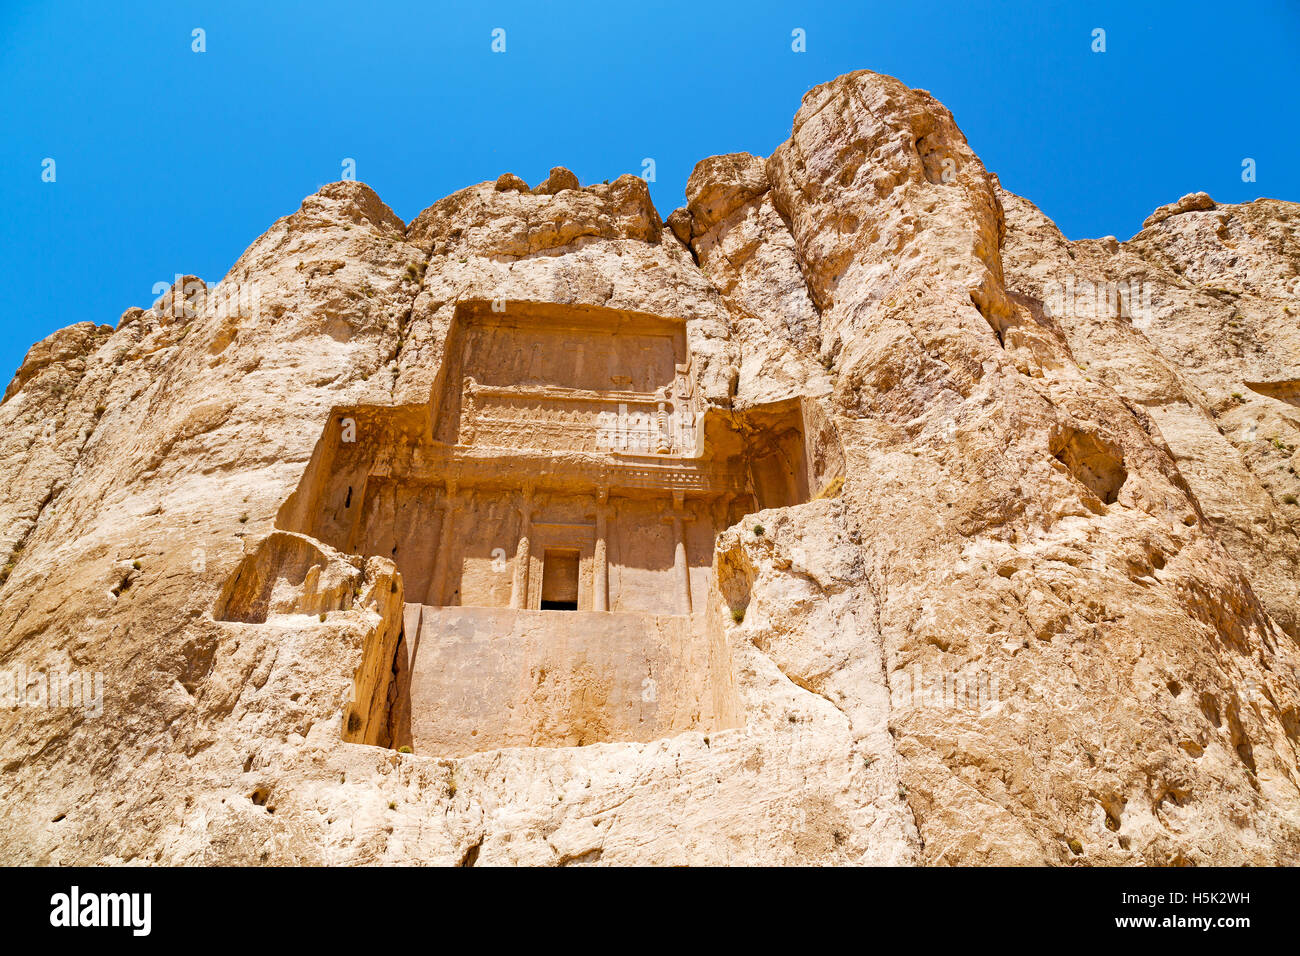 In Iran Near Persepolis The Old Ruins Historical Destination Stock Photo Alamy